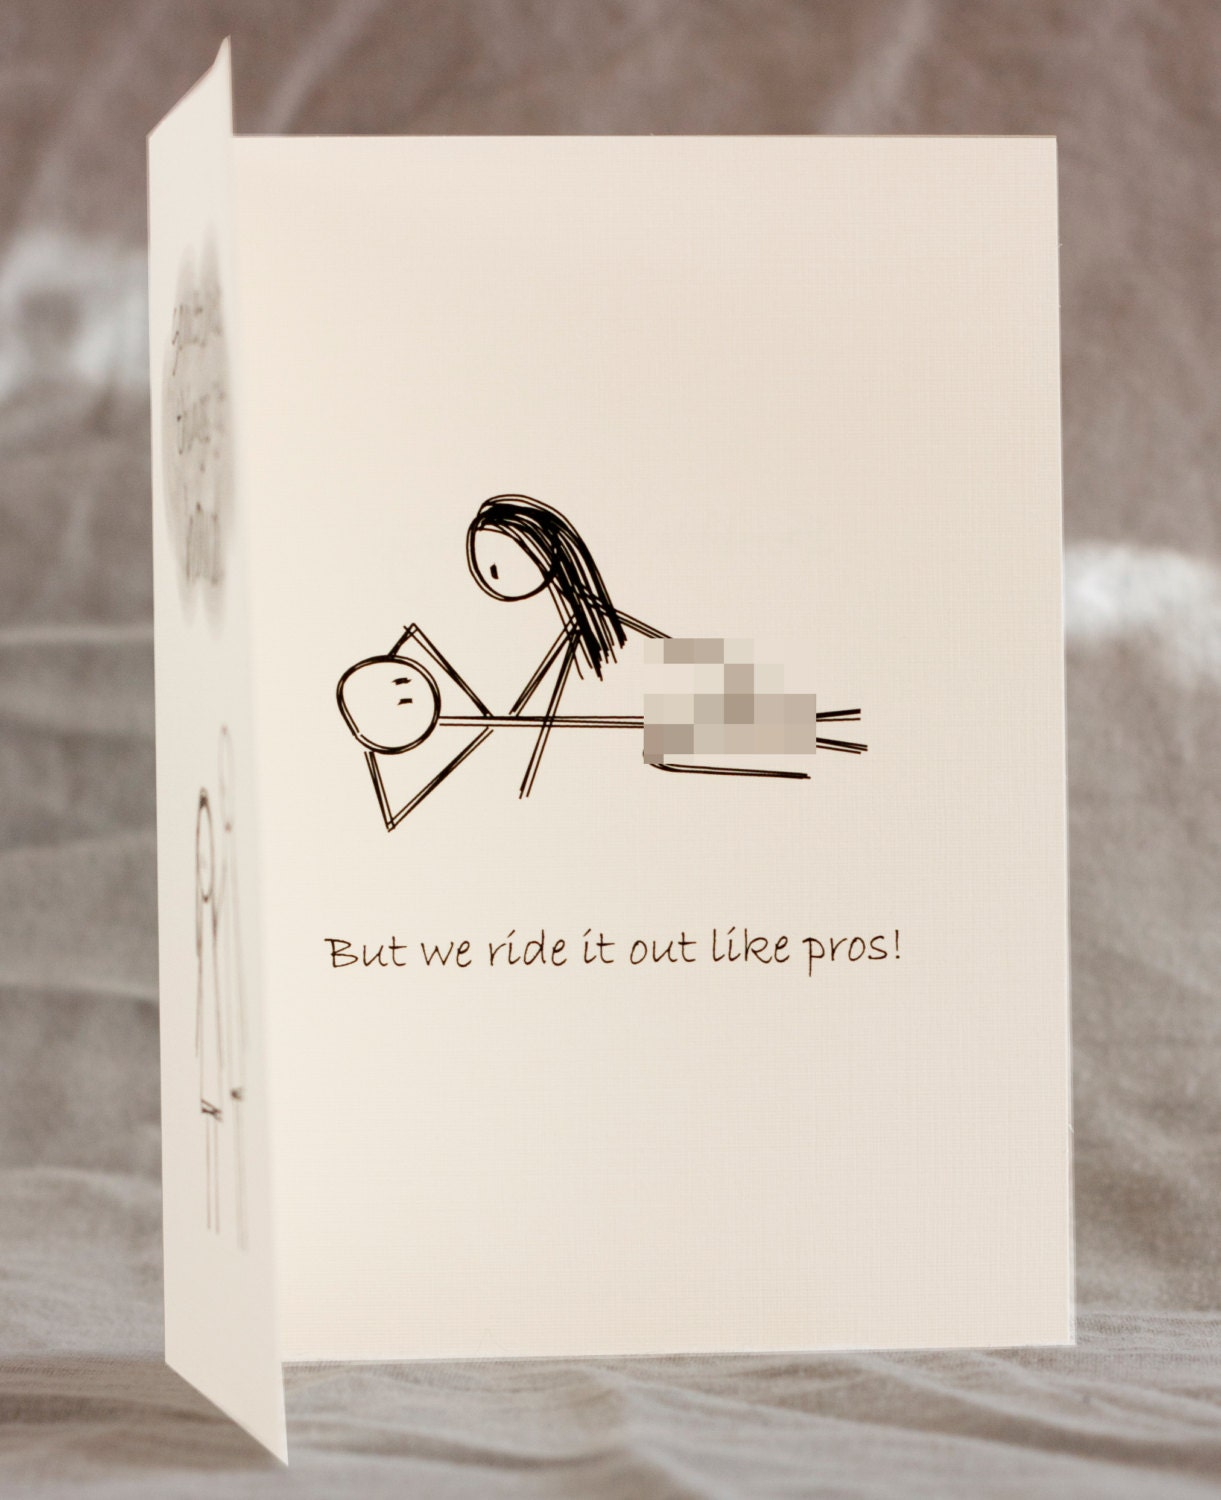 Funny mature adult dirty naughty cute love greeting card for zoom kristyandbryce Image collections